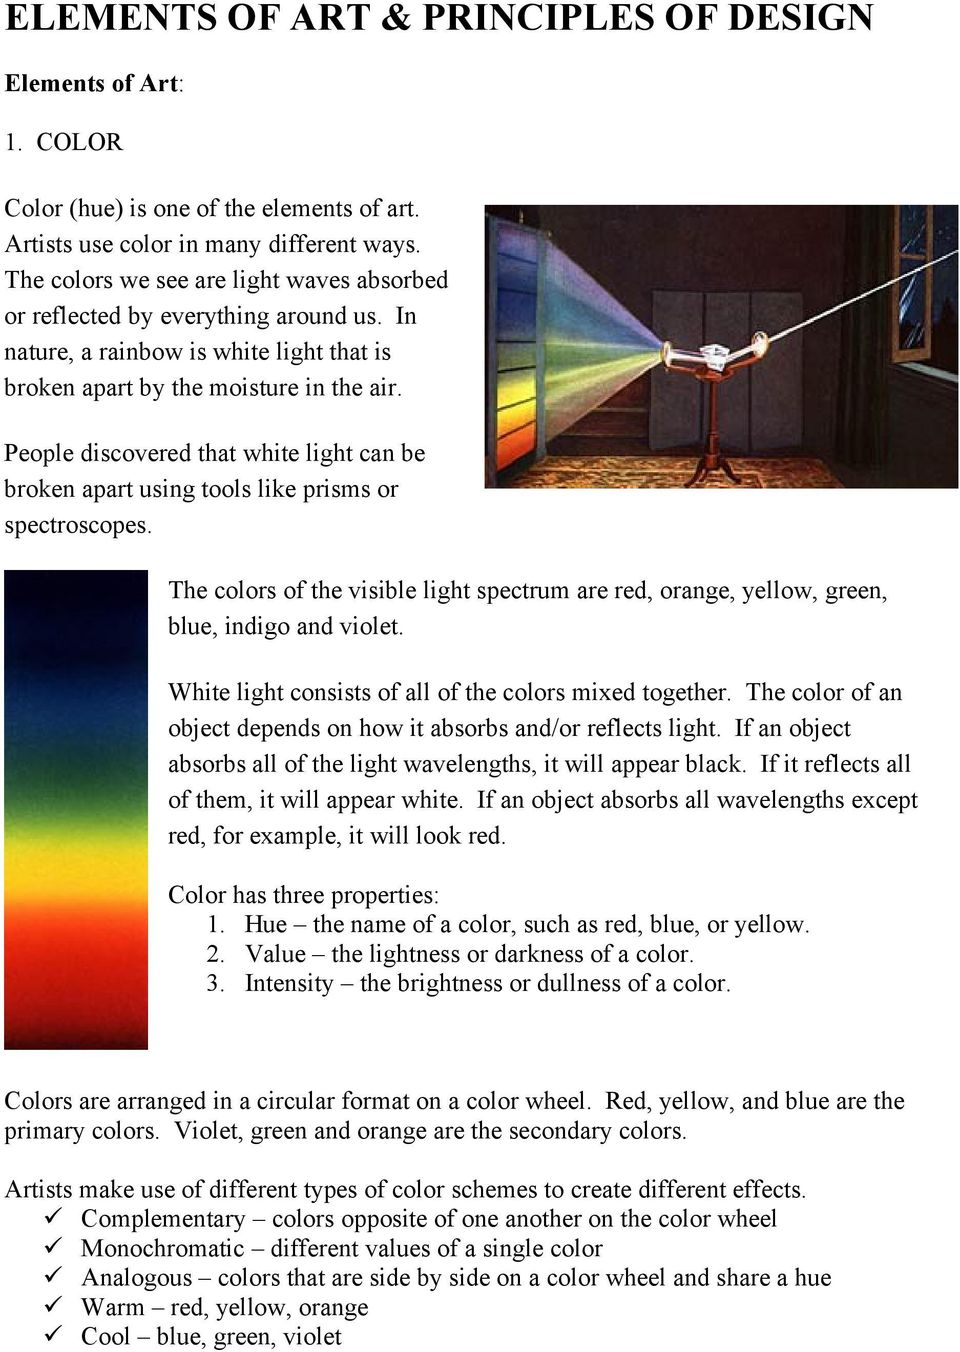 People discovered that white light can be broken apart using tools like prisms or spectroscopes. The colors of the visible light spectrum are red, orange, yellow, green, blue, indigo and violet.